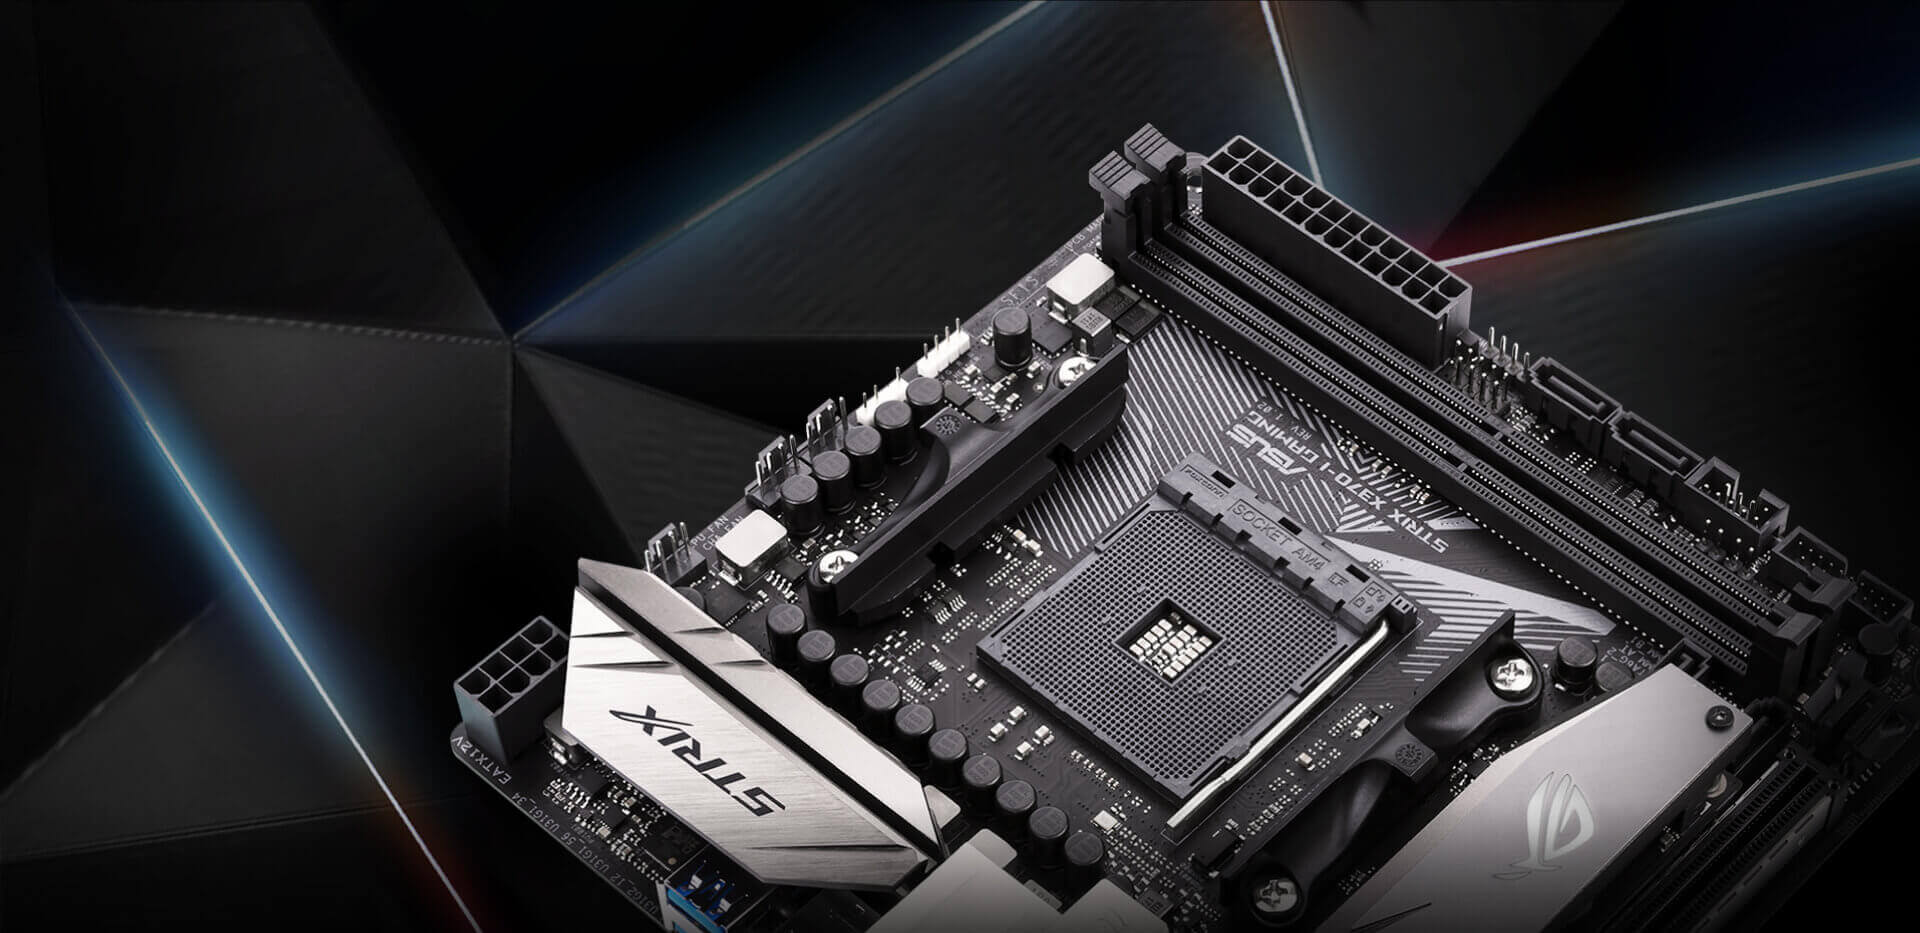 Rog Strix X370 I Gaming Motherboards Asus Usa Mouse Sensor Board Schematic Pcb Right Click Quotsave Asquot To Get Stylish Angular Metal Heatsinks With Patterned Matte Black